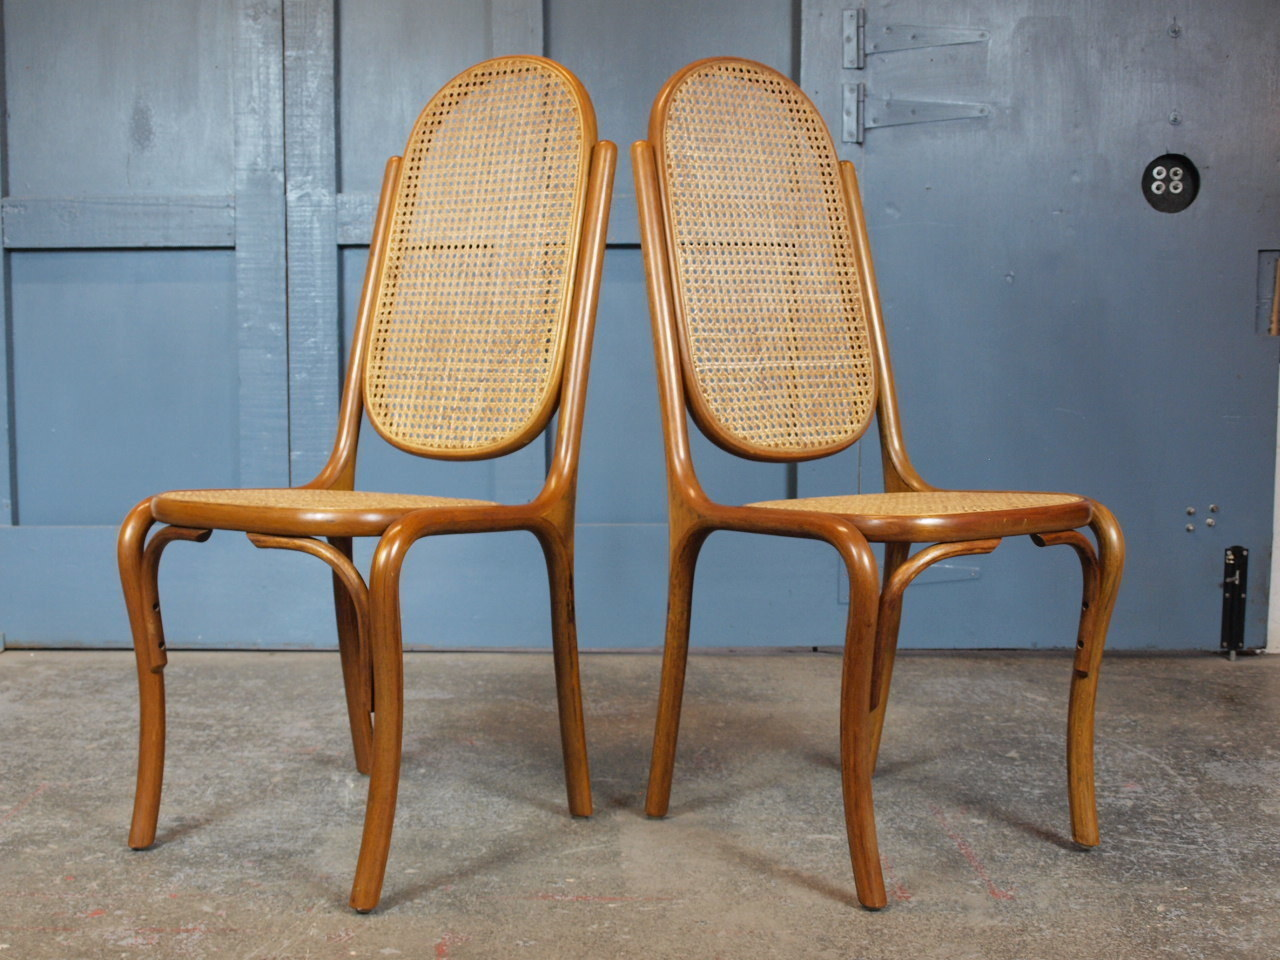 Astonishing Pair Of Mid Century Vintage 1970S Bentwood Bergere French Style Dining Chairs Download Free Architecture Designs Rallybritishbridgeorg